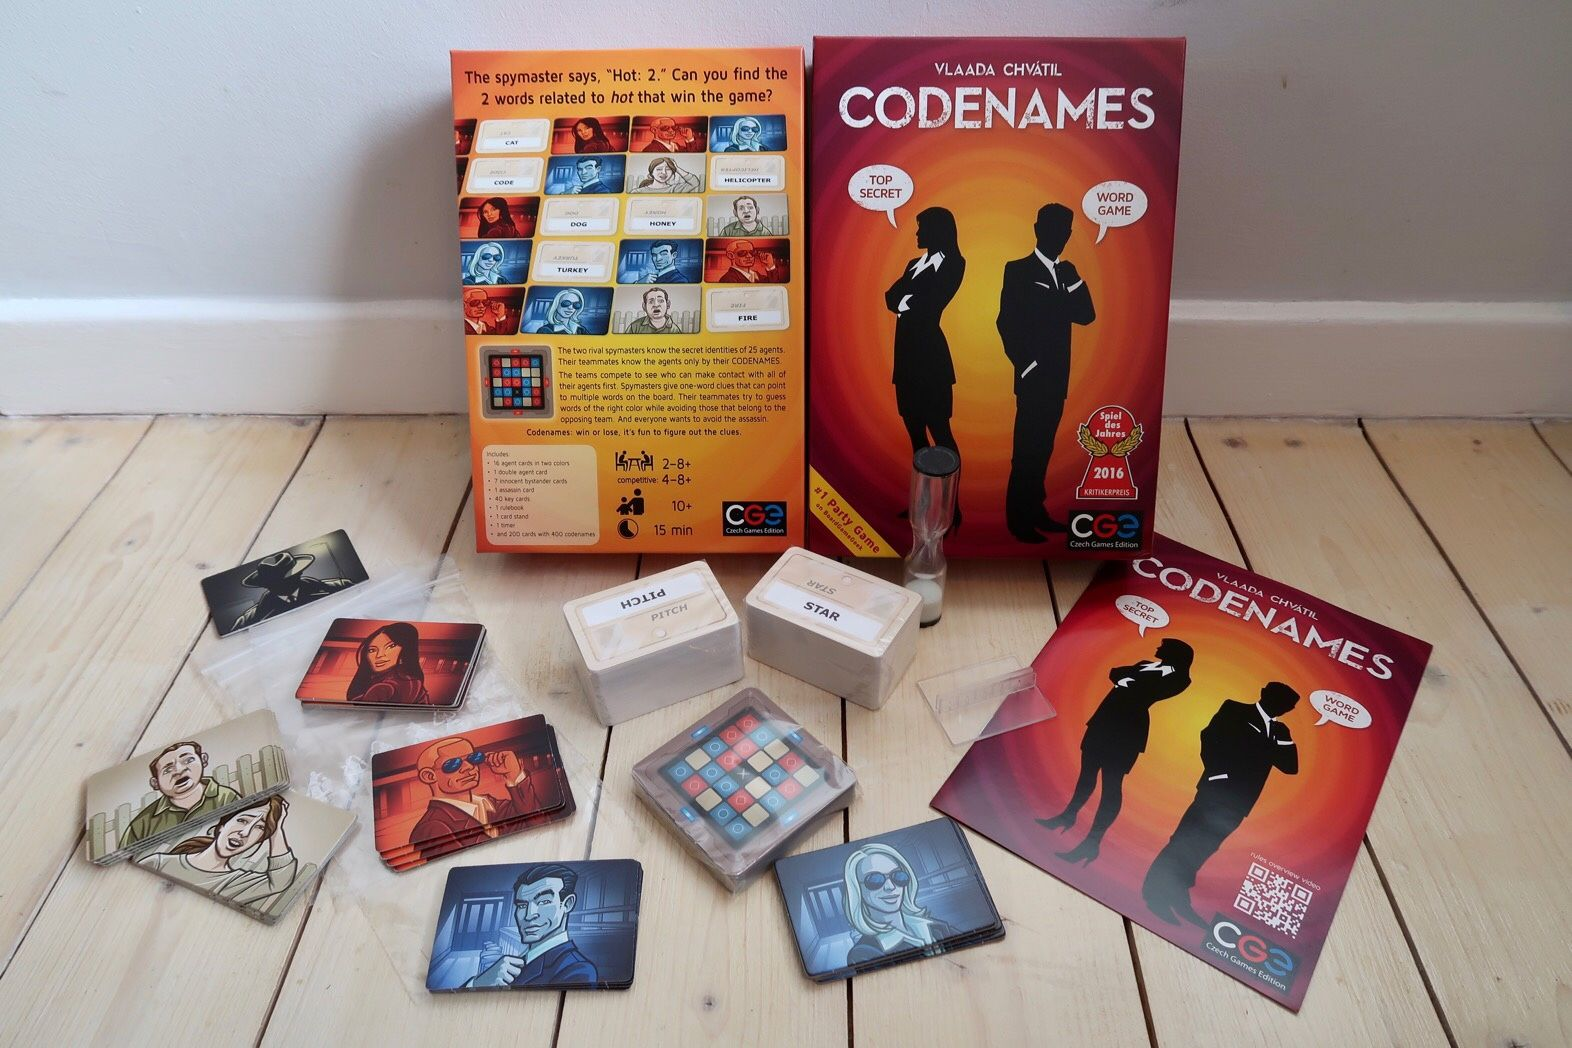 Review Codenames Card Game (With images) Card games, Games